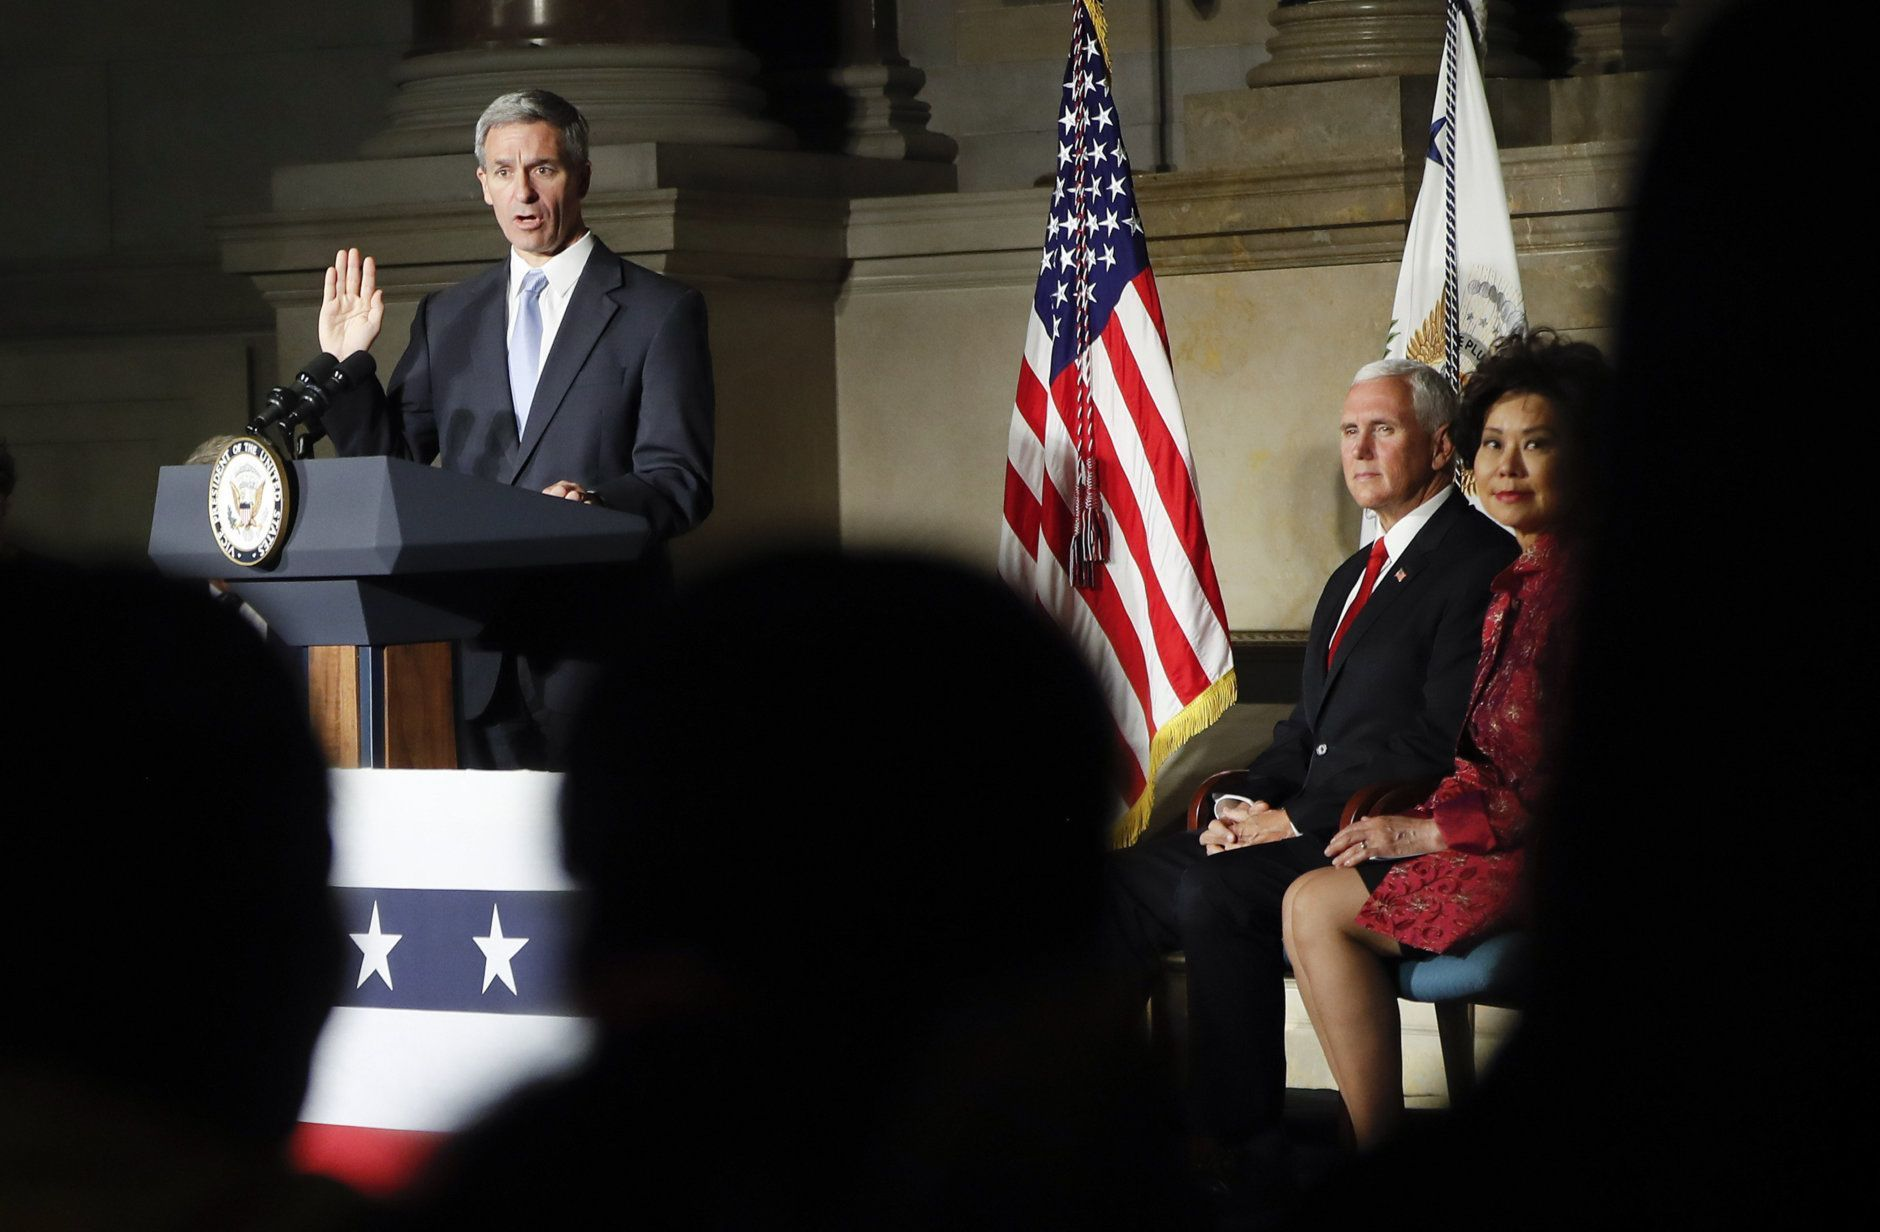 Acting Director, US Immigration and Immigration Services, Kenneth T. Cuccinelli, left, administers the Oath of Allegiance during a naturalization ceremony in celebration of Independence Day at the National Archives in Washington, Thursday, July 4, 2019. Also on stage are Vice President Mike Pence and Secretary of Transportation Elaine Chao, far right. (AP Photo/Pablo Martinez Monsivais)